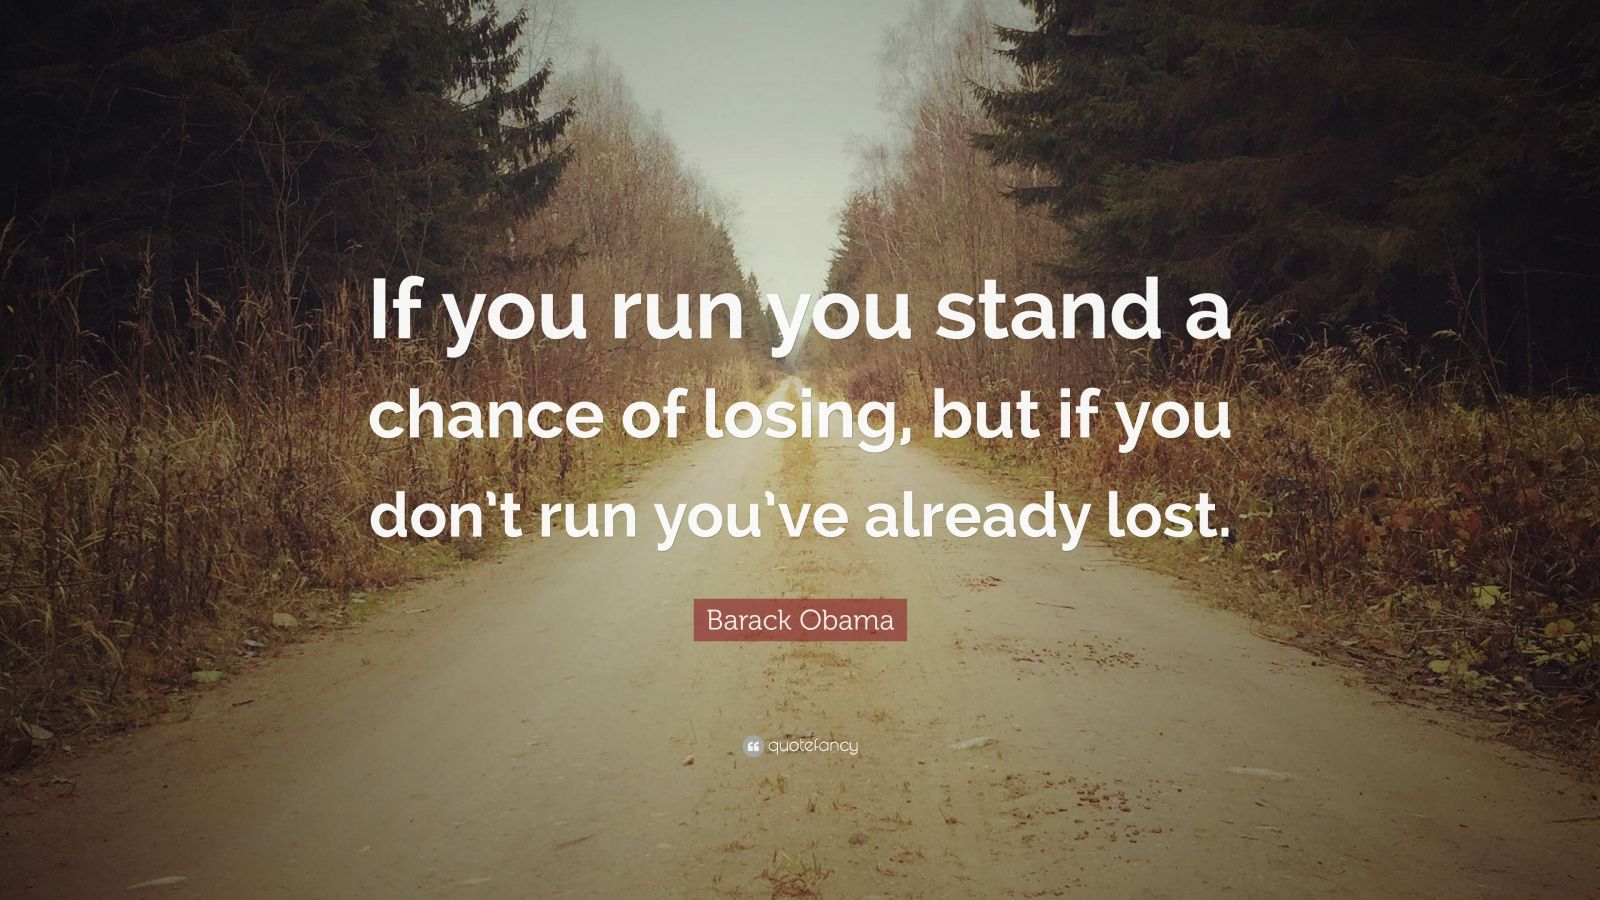 """Barack Obama Quote: """"If you run you stand a chance of losing, but if you don't run you've already lost."""""""